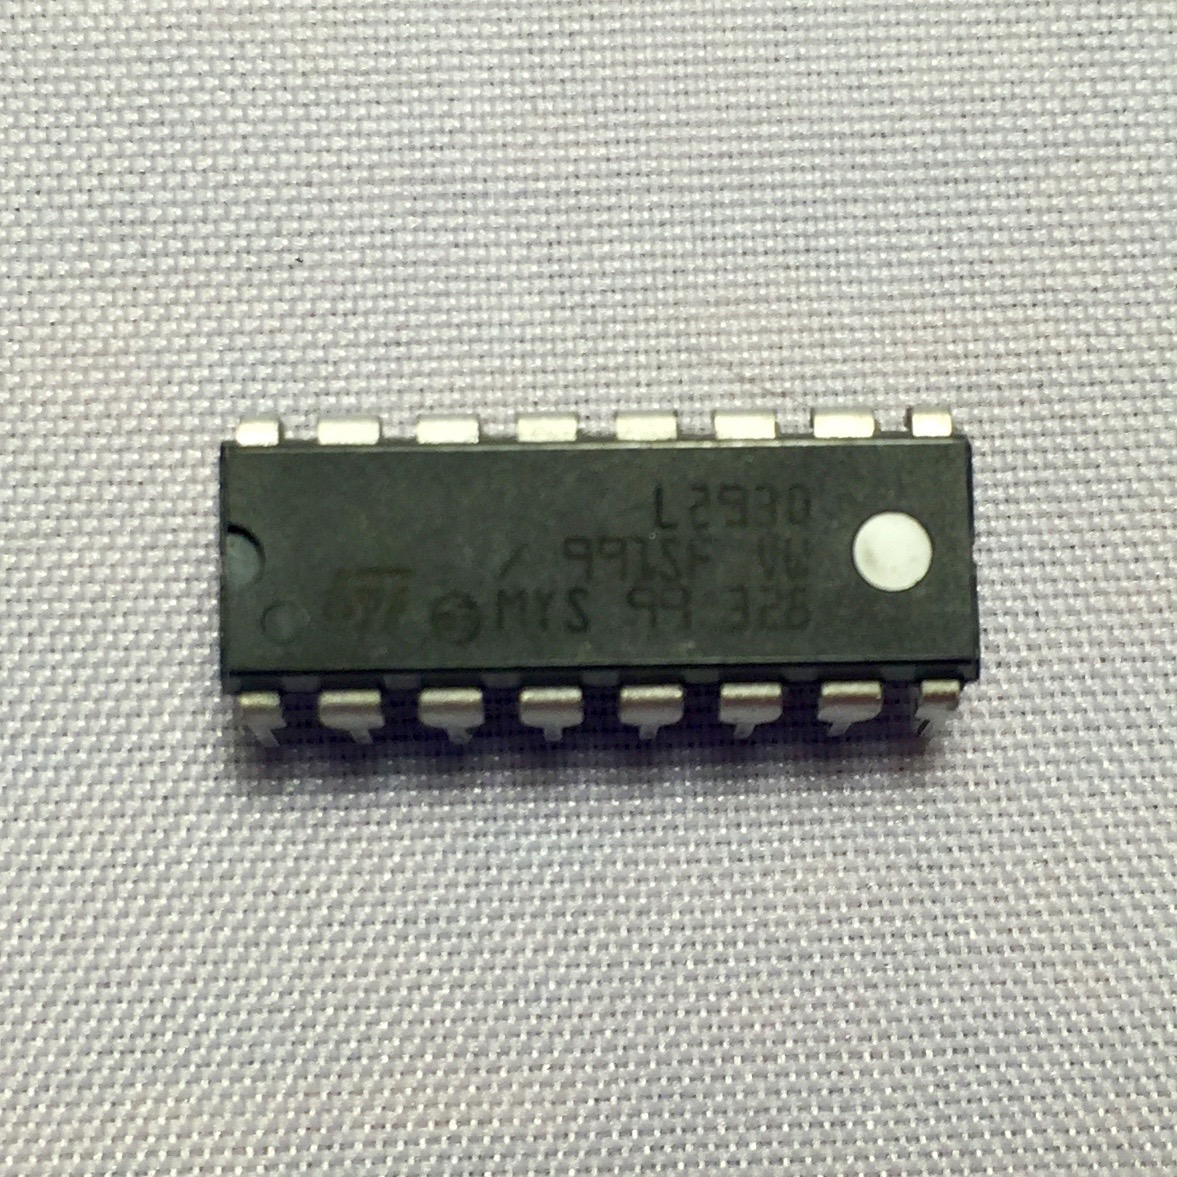 Motor driver chip l293d chickbot motor driver chip l293d sciox Gallery